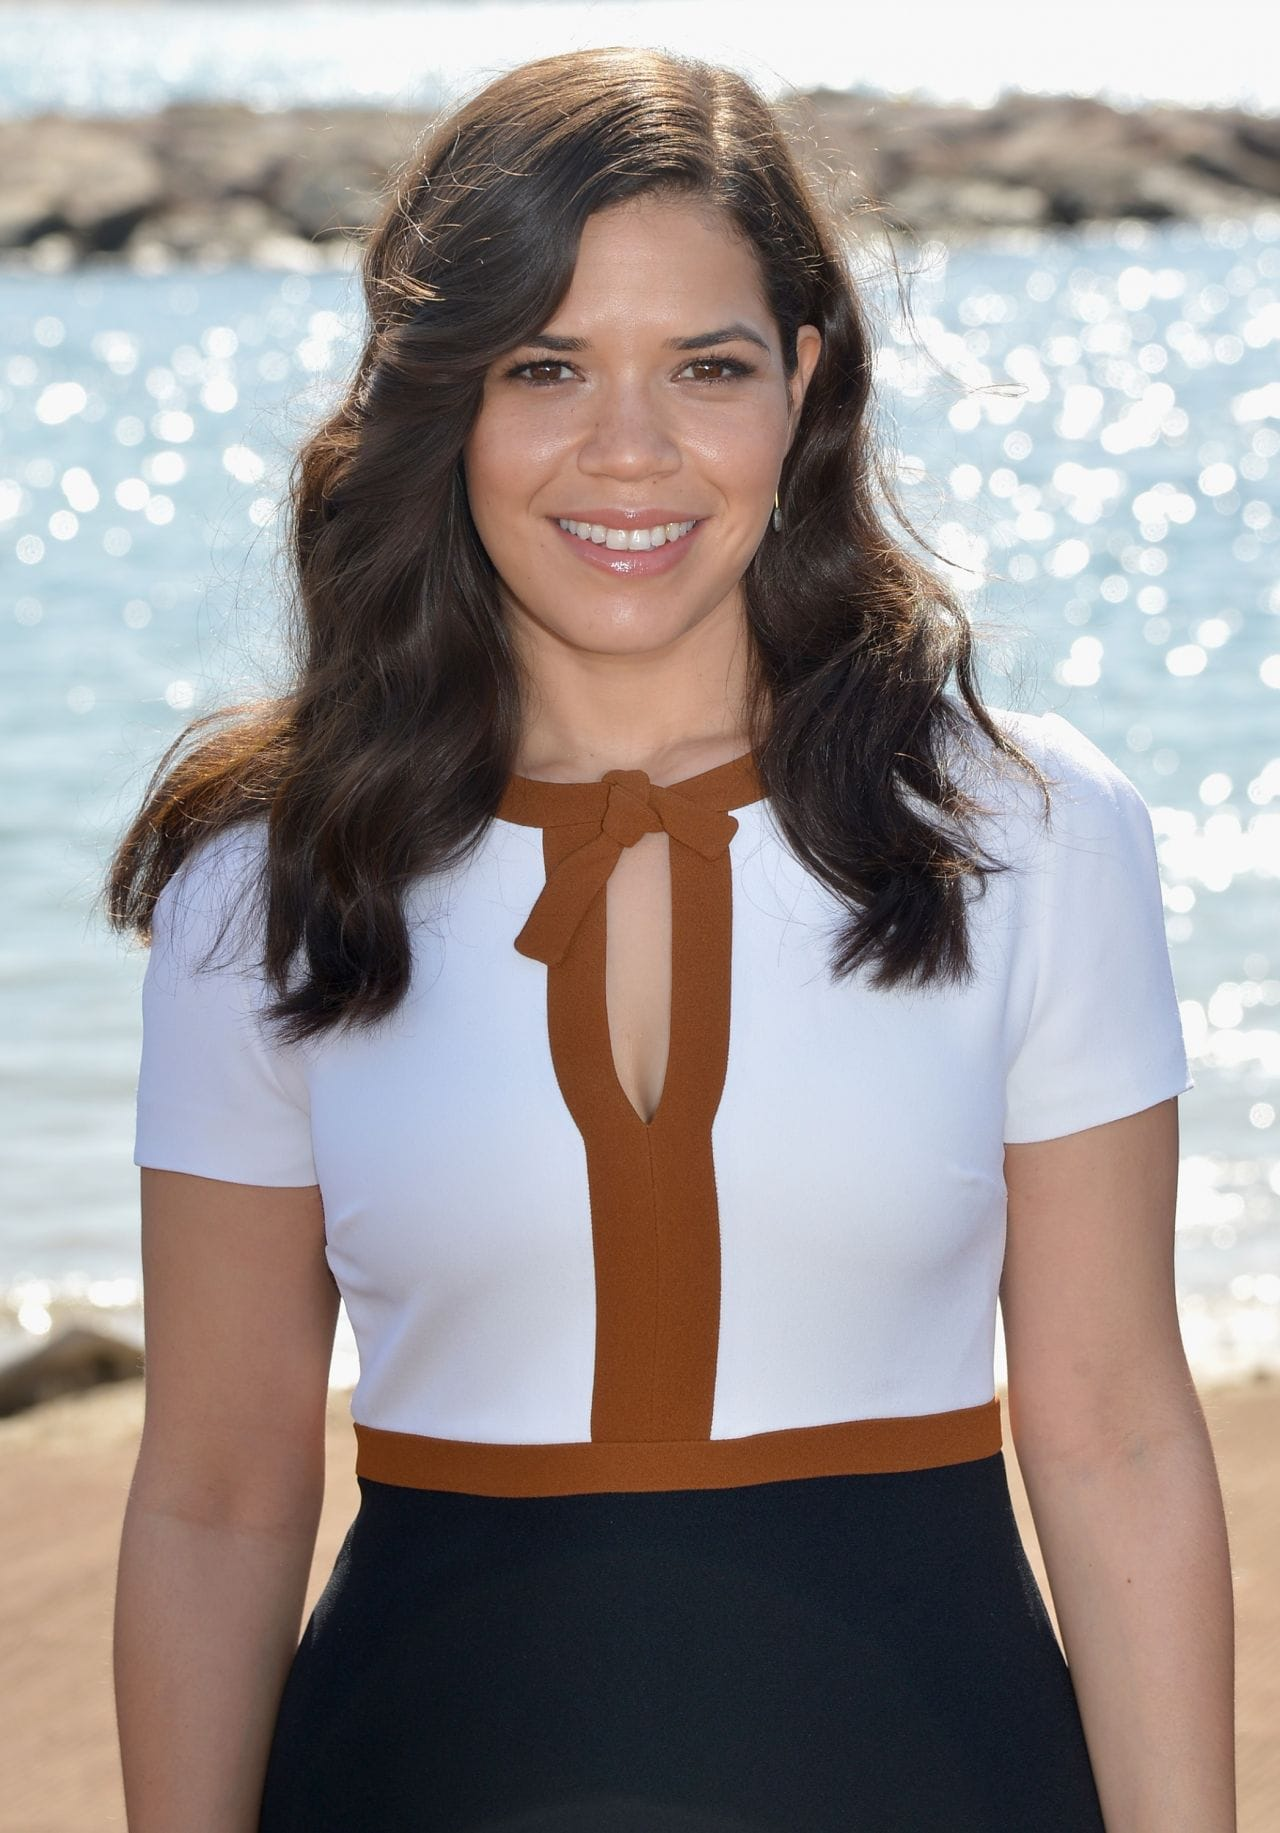 America Ferrera Background